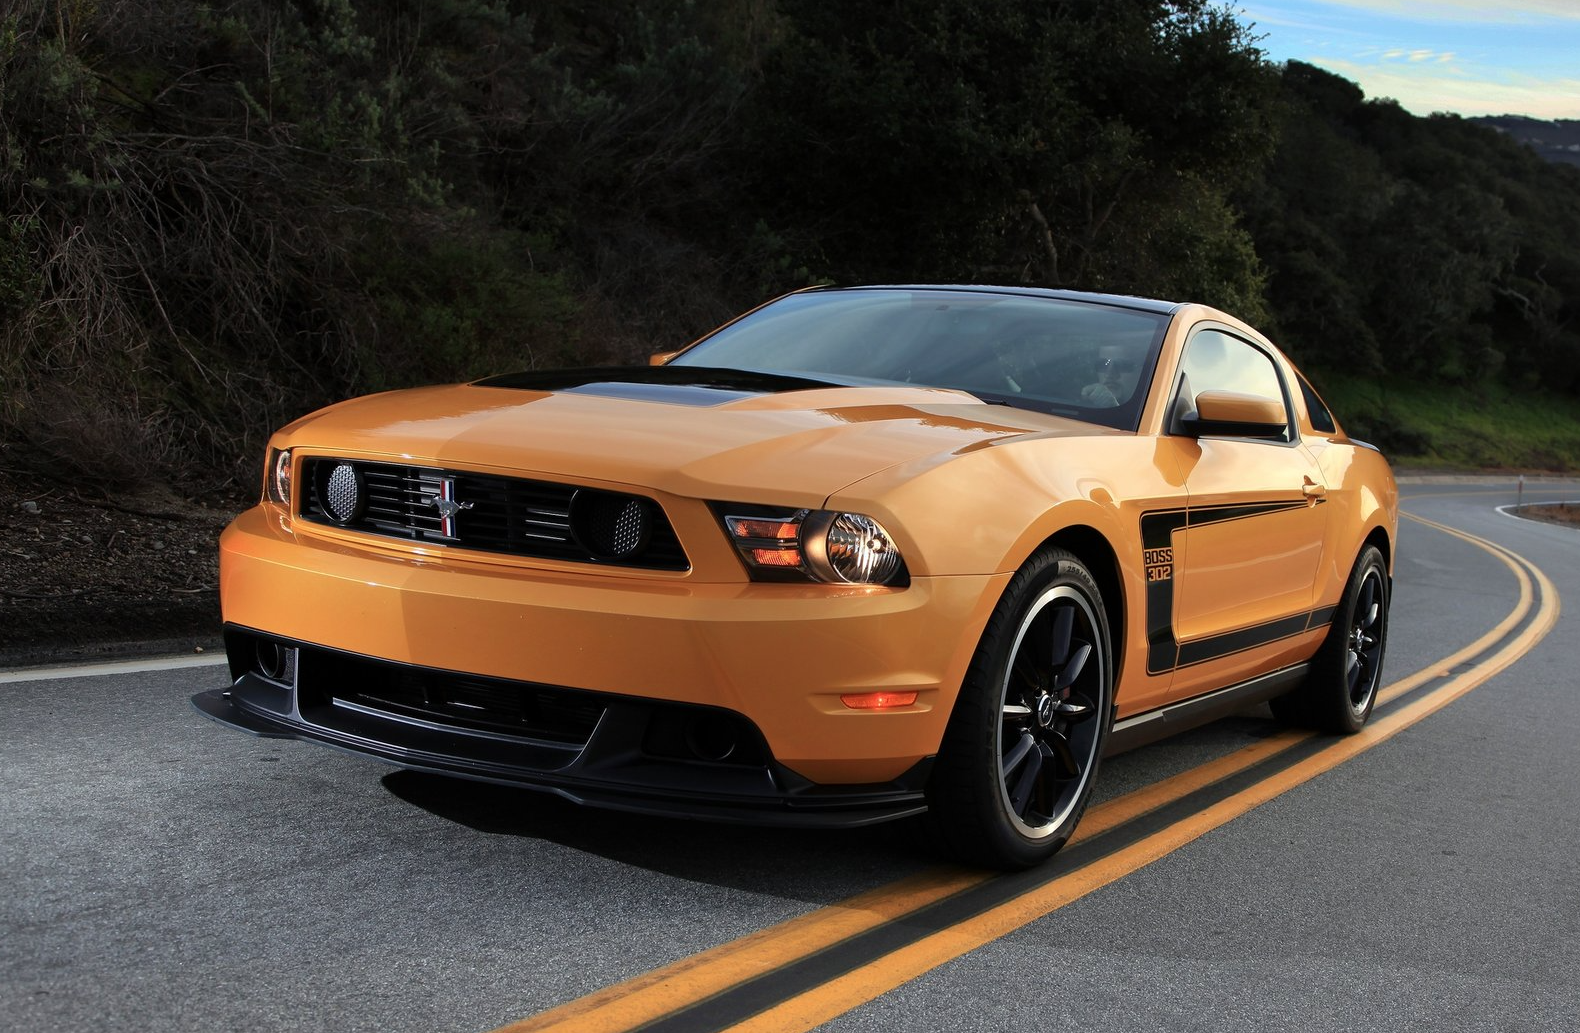 5th Generation Ford Mustang Maintenance Schedules